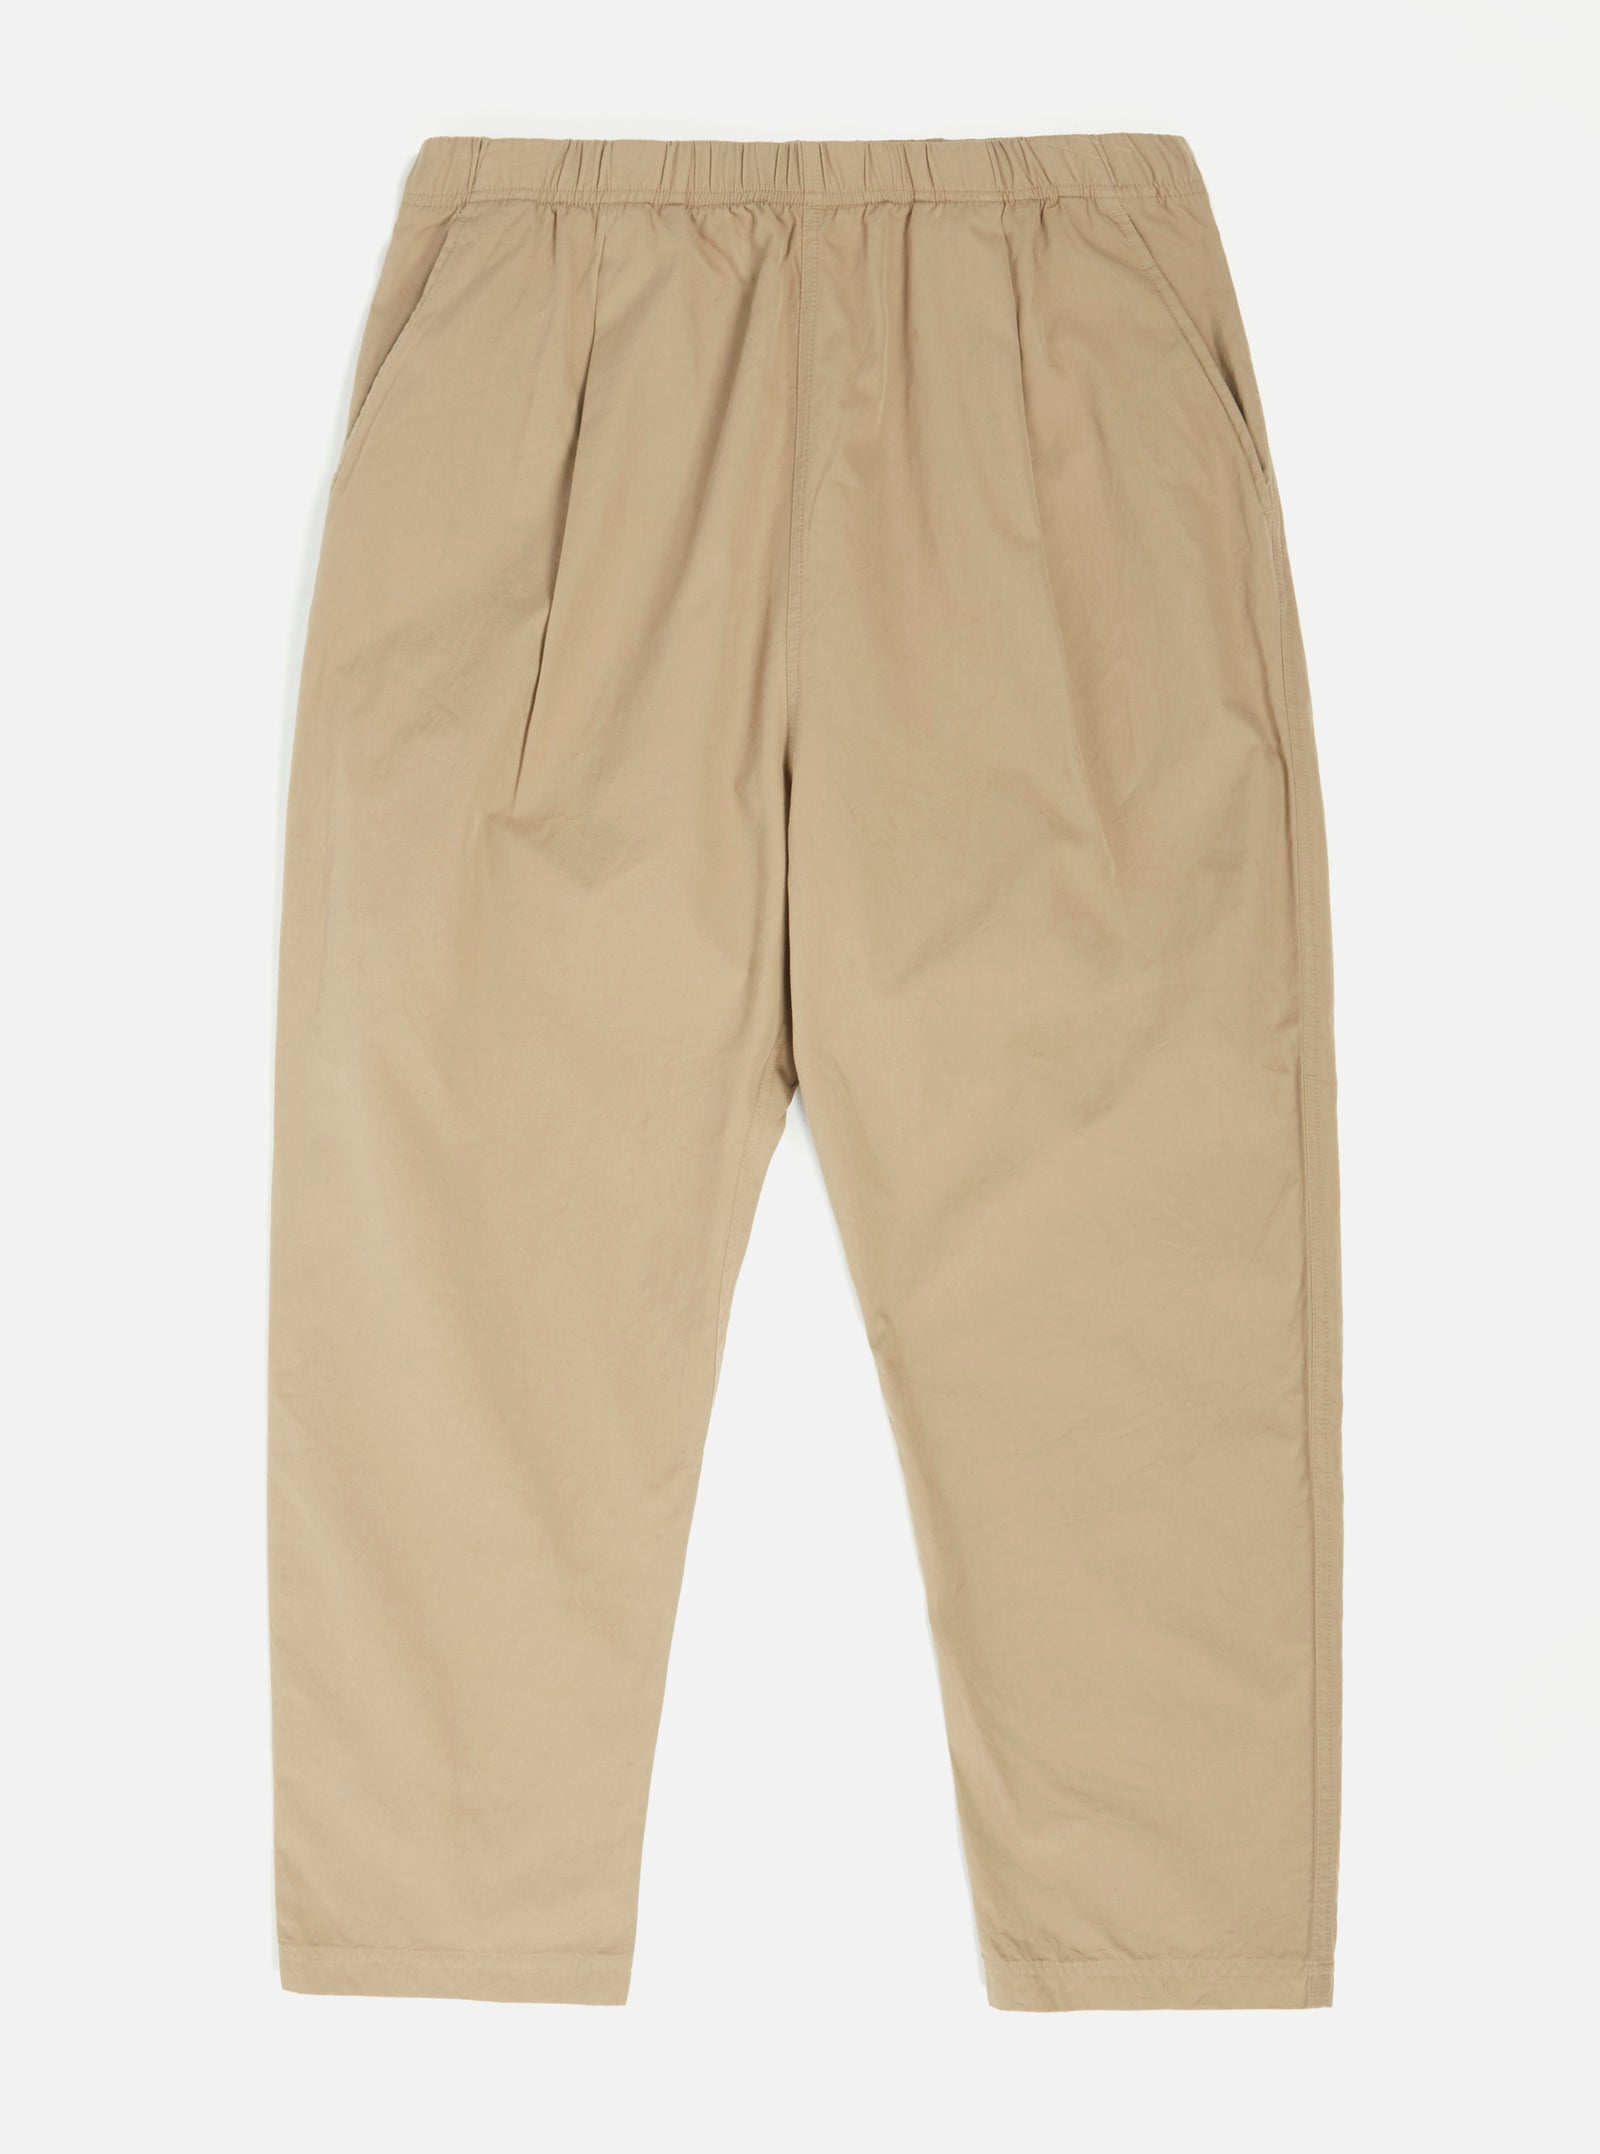 Universal Works Kyoto Work Pant in Sand Washed Cotton Suiting